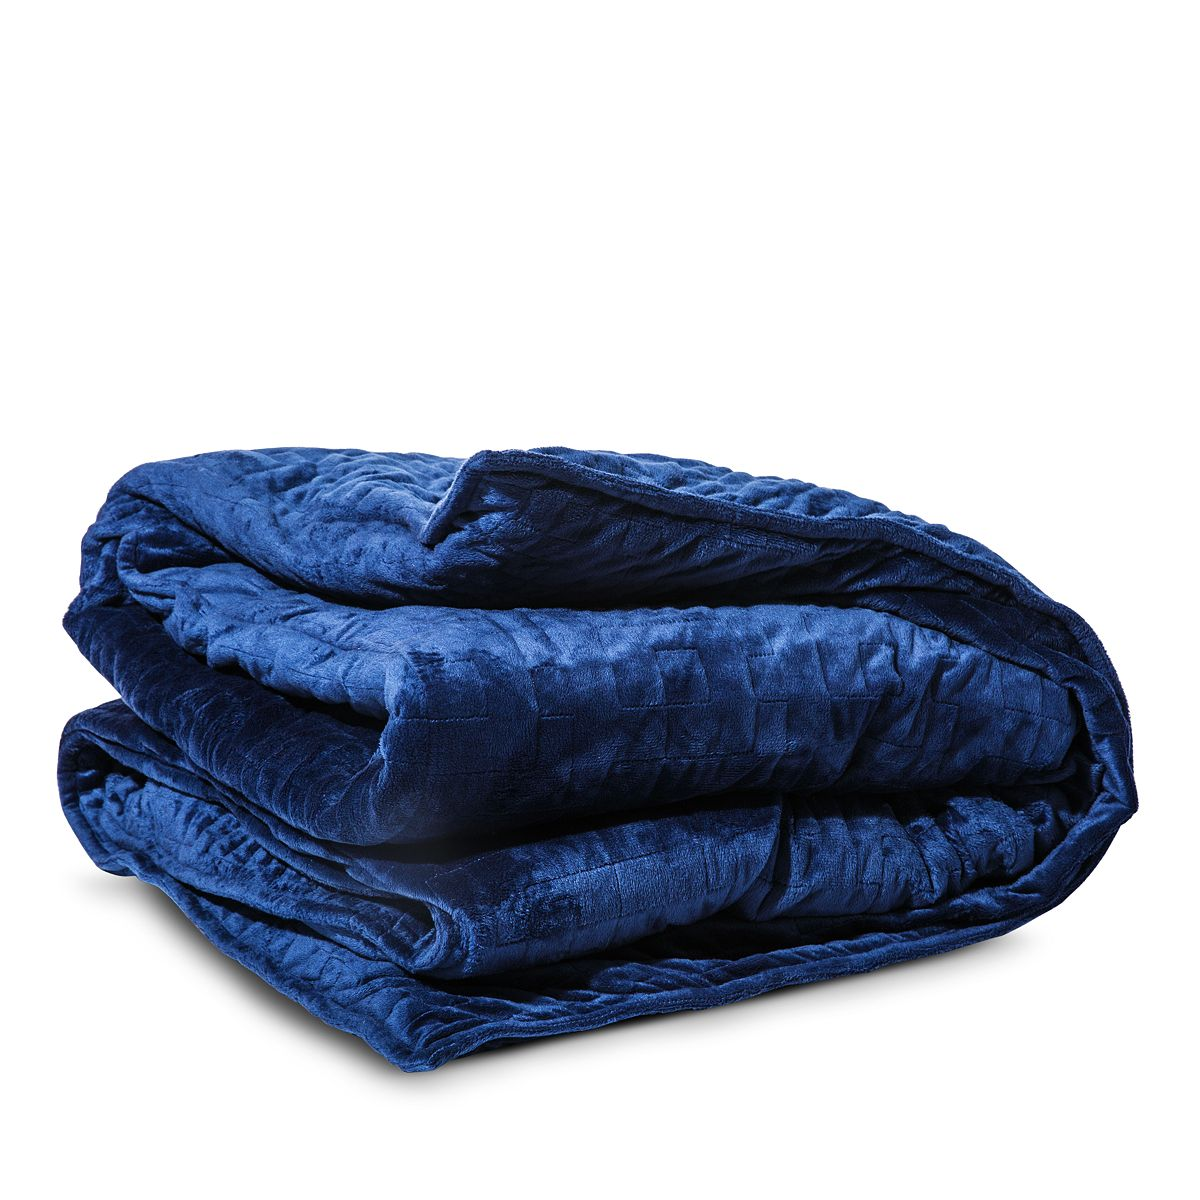 Gravity Weighted Blanket at Bloomingdale's